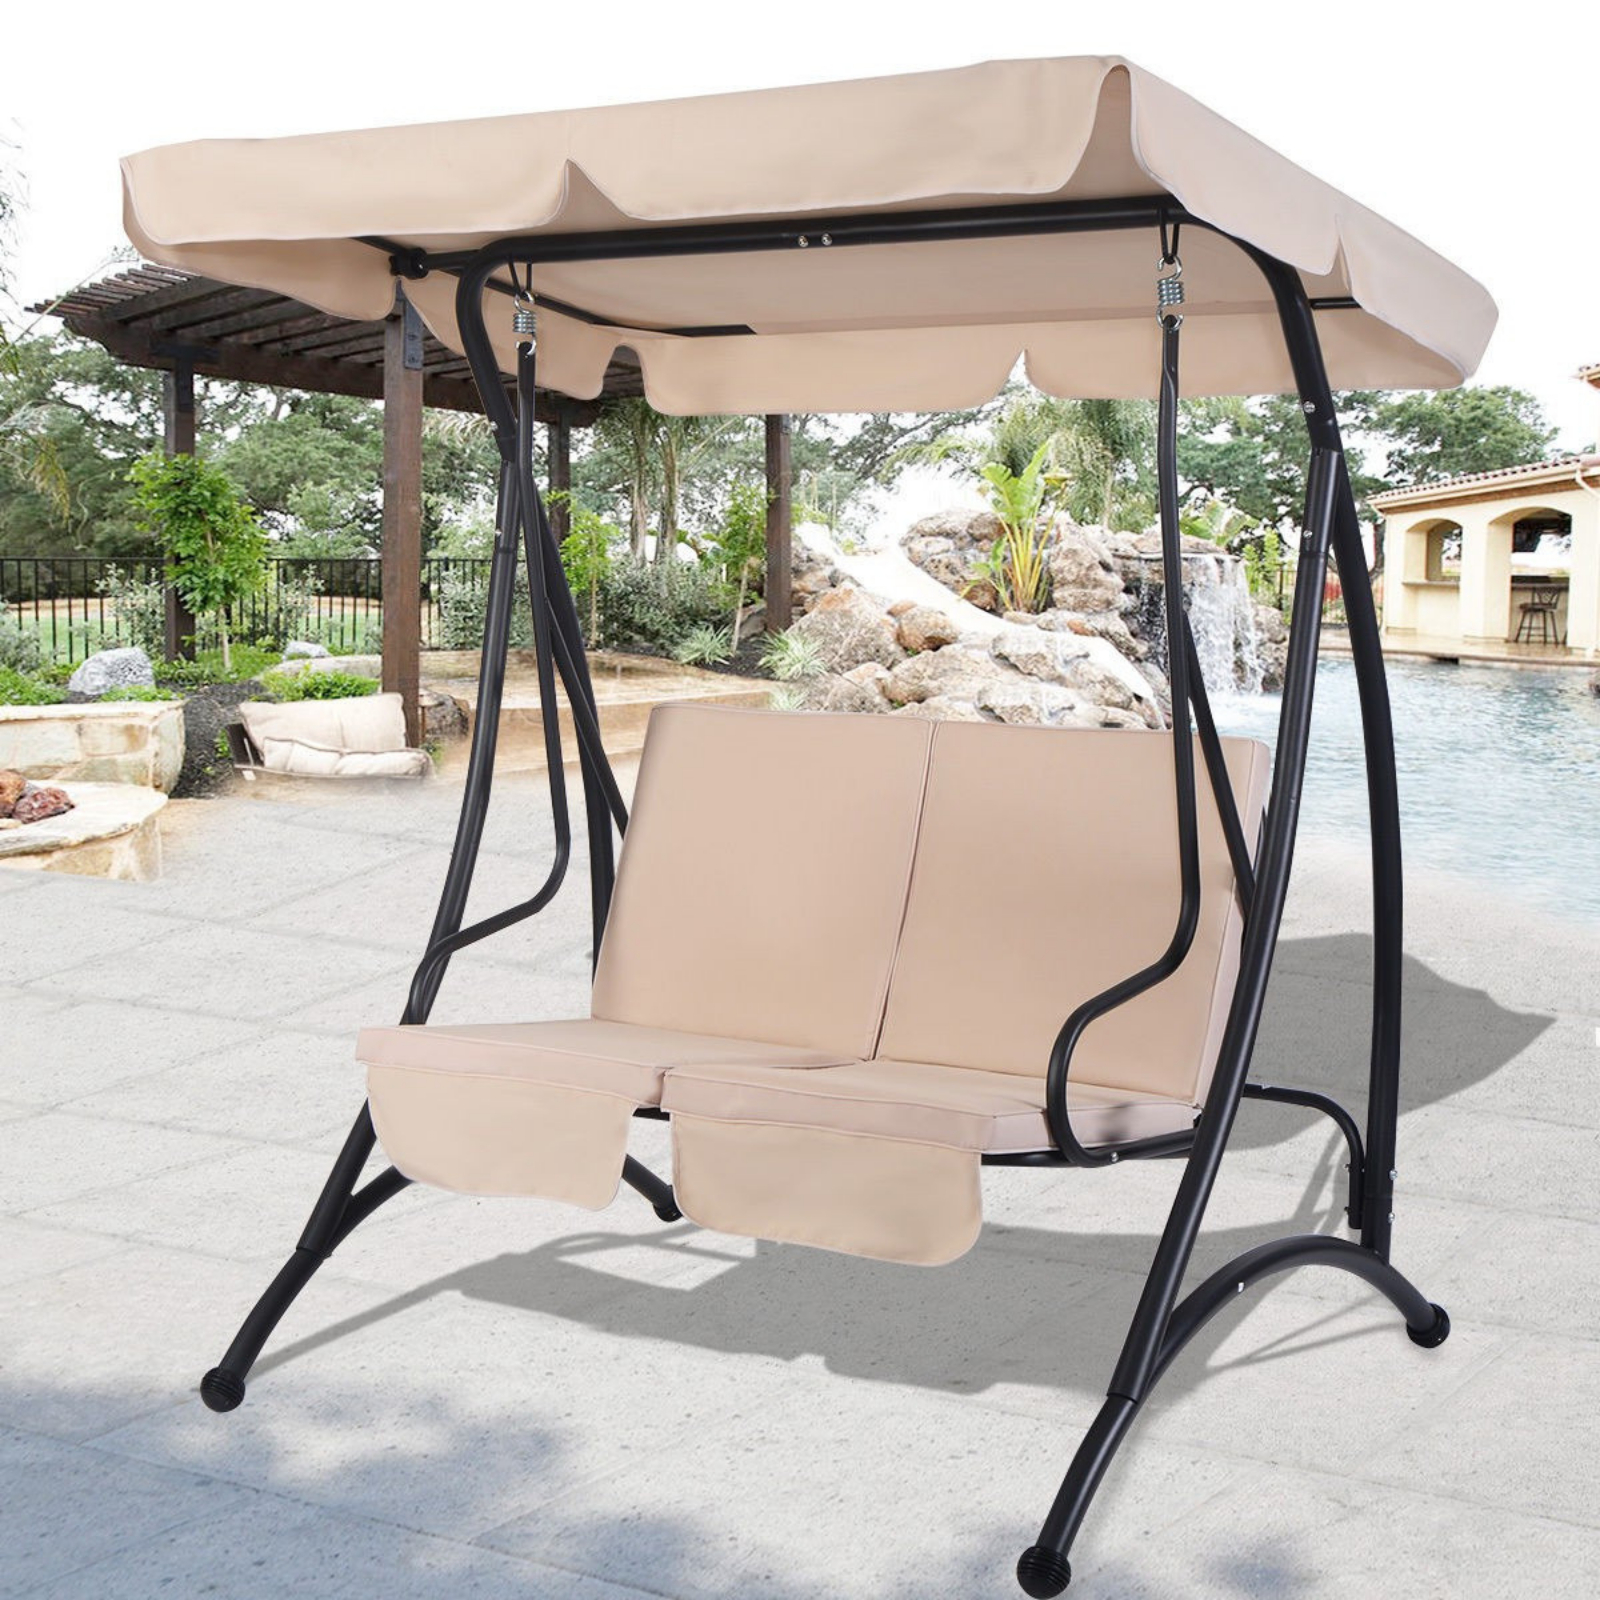 Outdoor Swing With Canopy 2 Person Patio Porch Steel Swing Double Hanging Seat With Current Patio Gazebo Porch Canopy Swings (View 21 of 30)